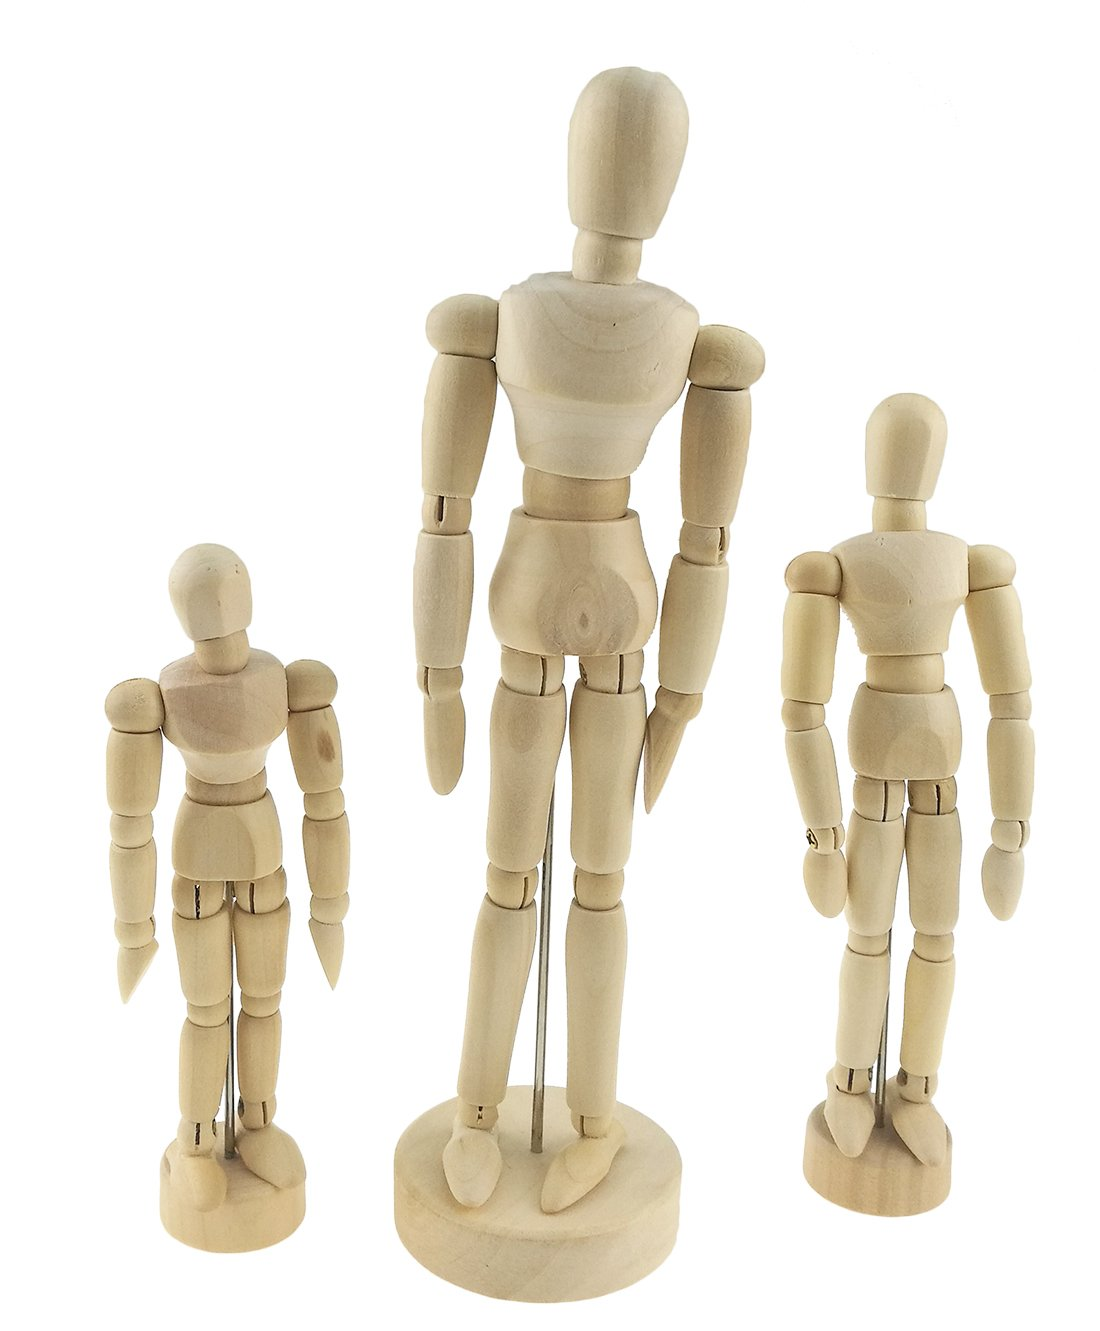 Set of 3 Wooden Pine Movable Joint Family Model For Art Mannequin Sketch Reference Home Decor(Daddy Mommy Child)